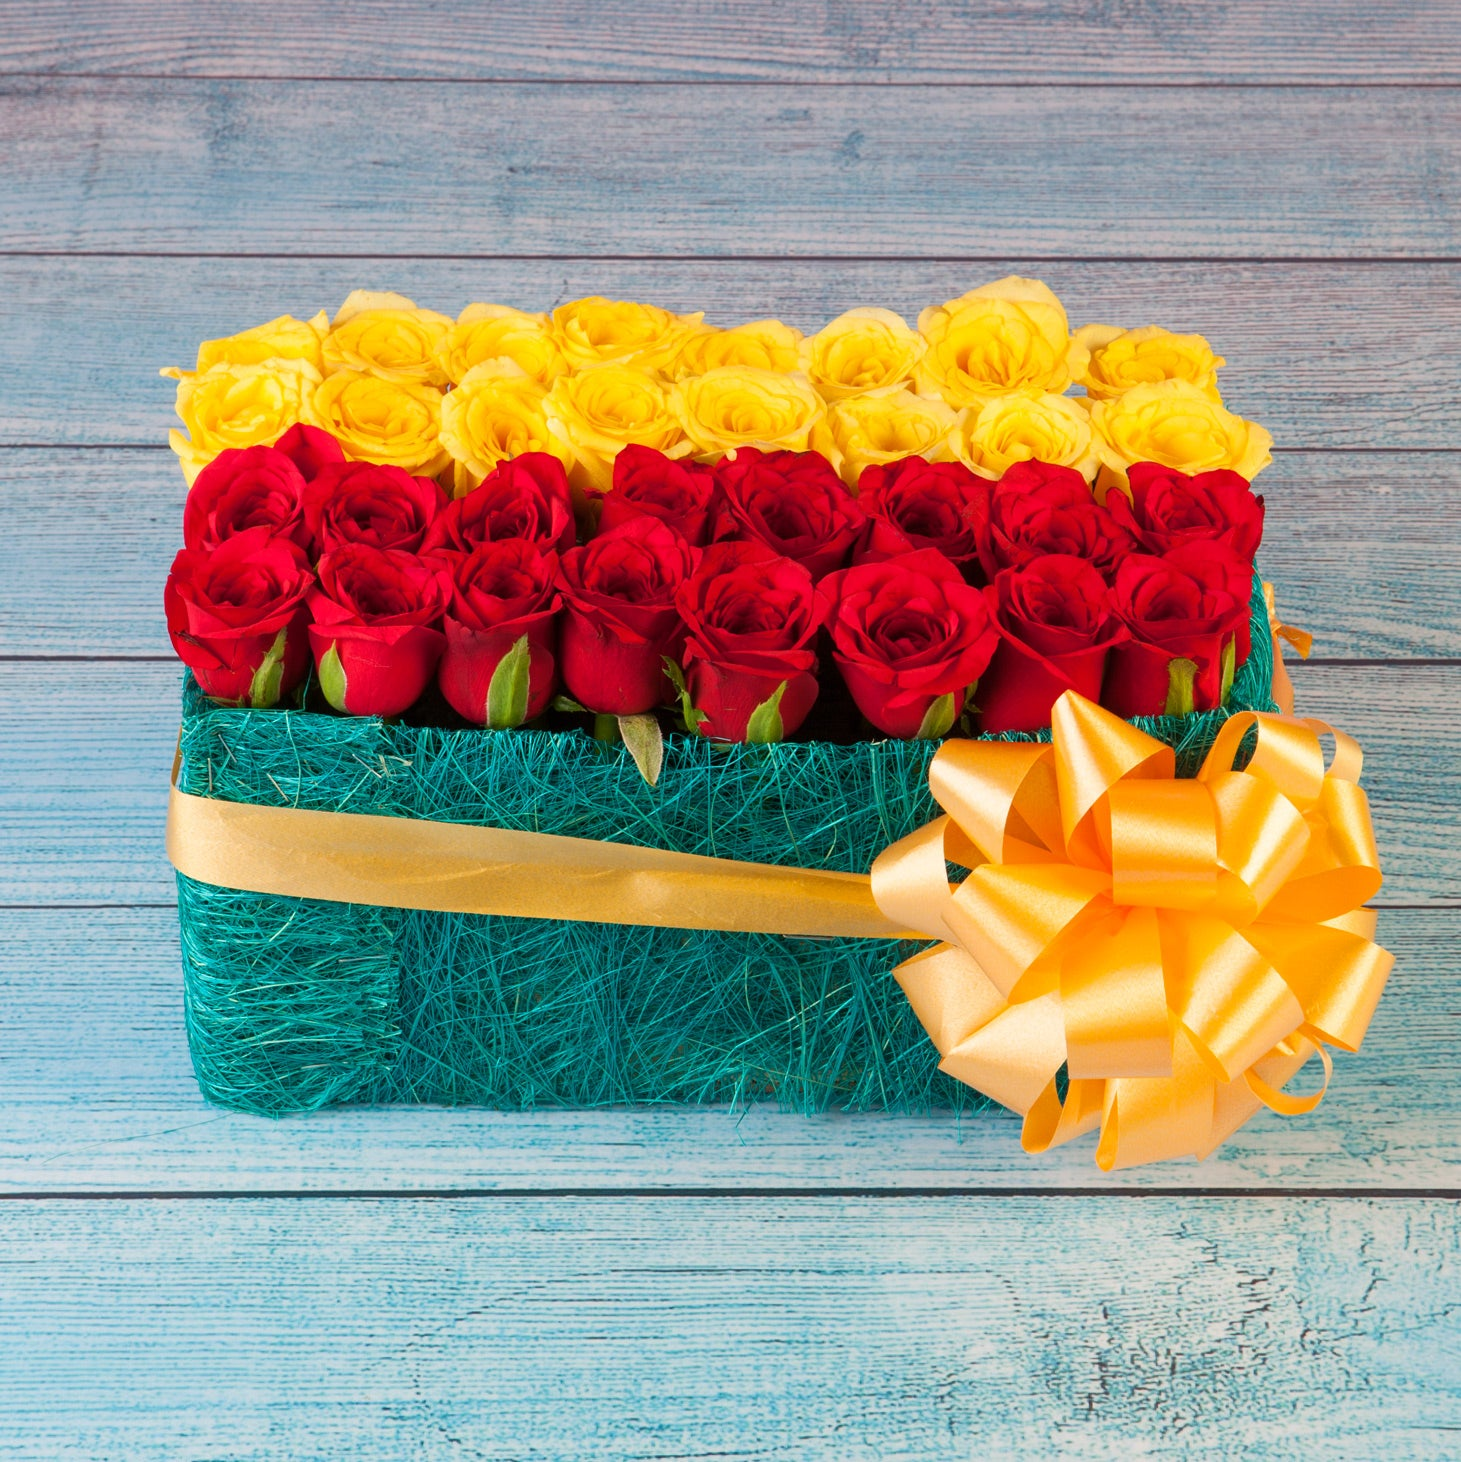 Bed Of Roses Online Flowers Delivery in Pune & Mumbai